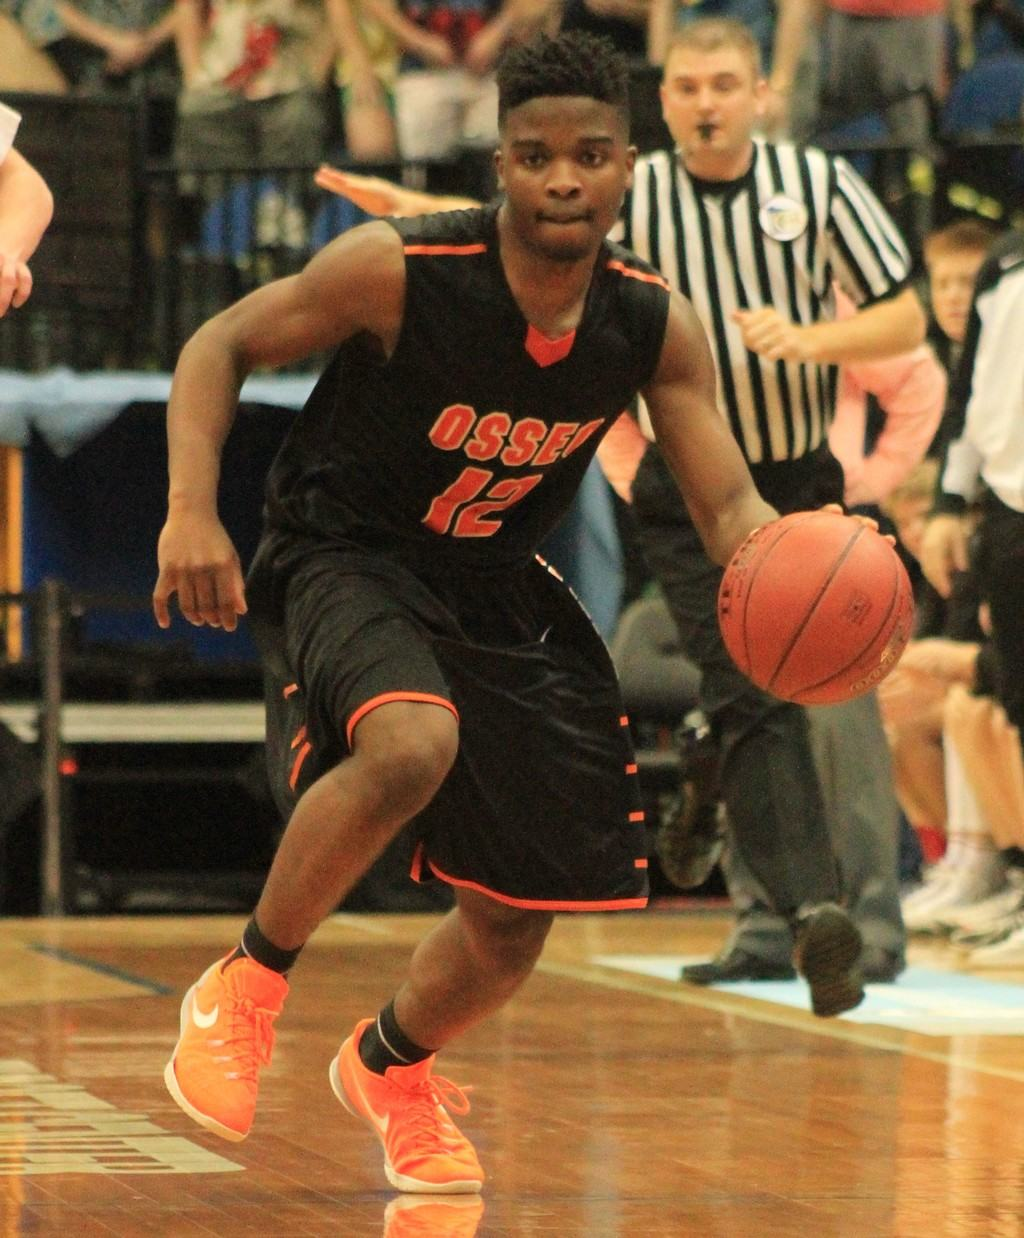 The steady play of Allan Anderson contributed in Osseo's Class AAAA boys' basketball quarterfinal victory.